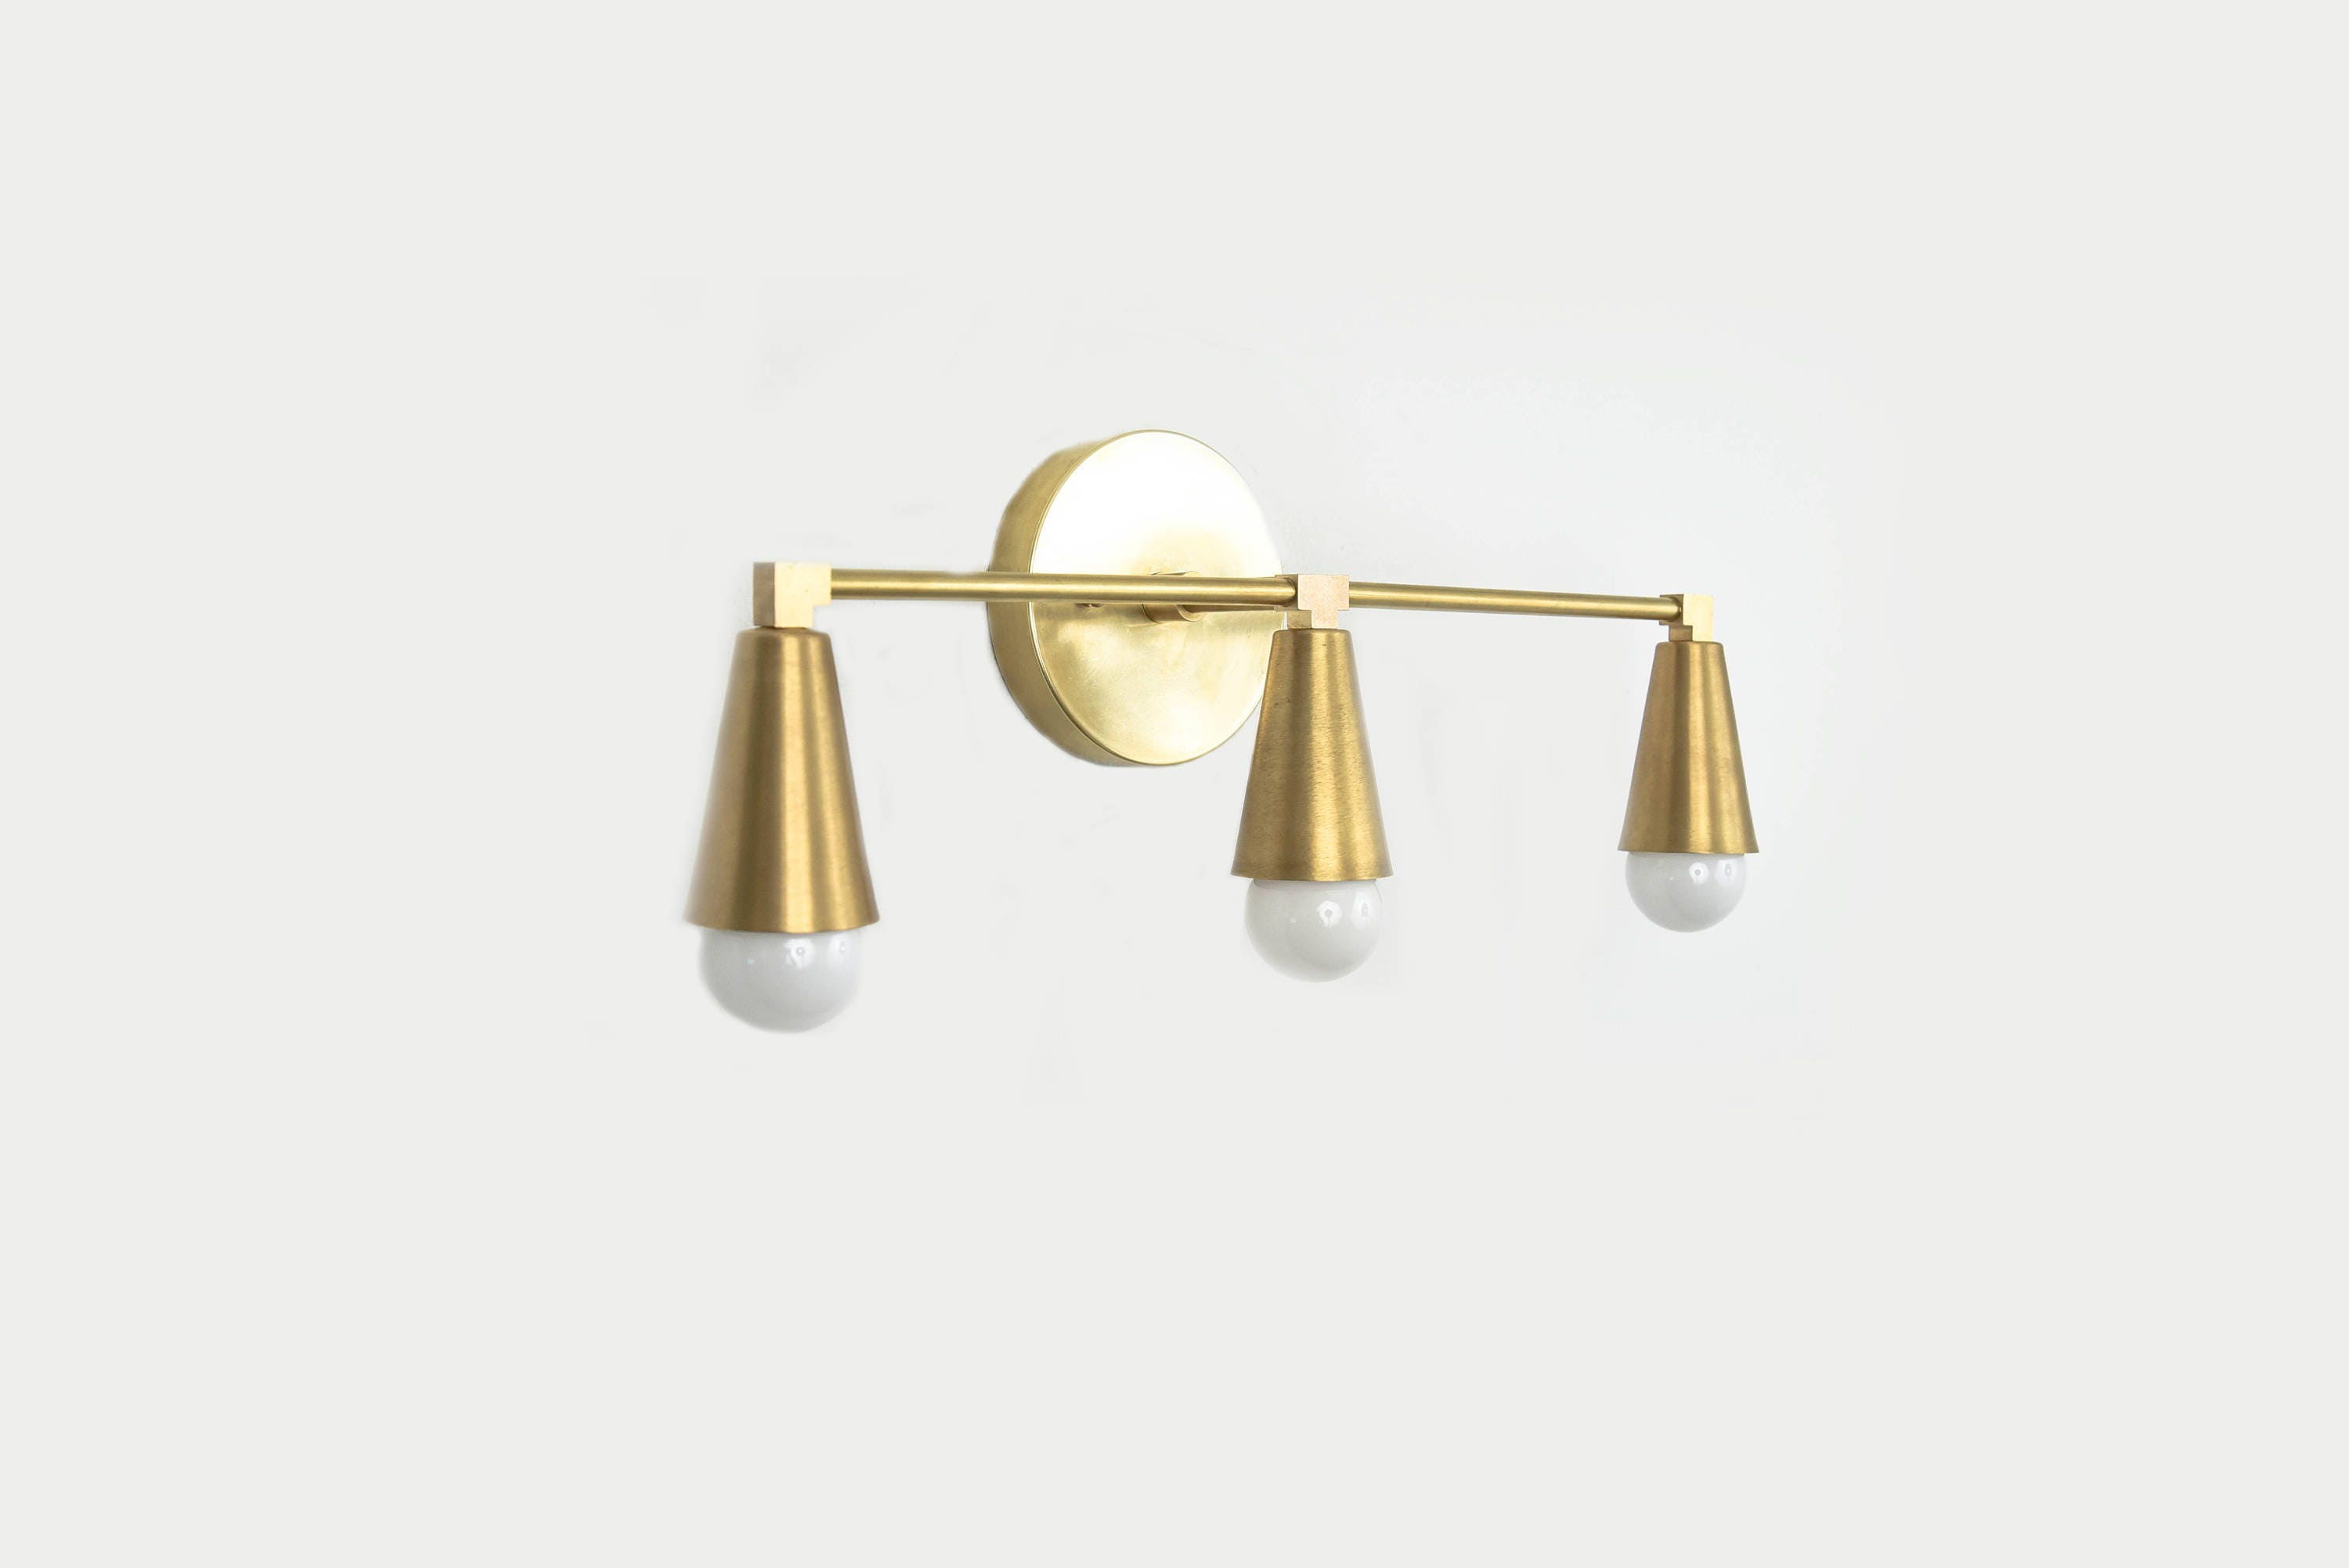 wide brass cfm aged agb opal in capitol and lighting finish sconce inch wall shown magnifying sheridan image item hudson bathroom valley glass